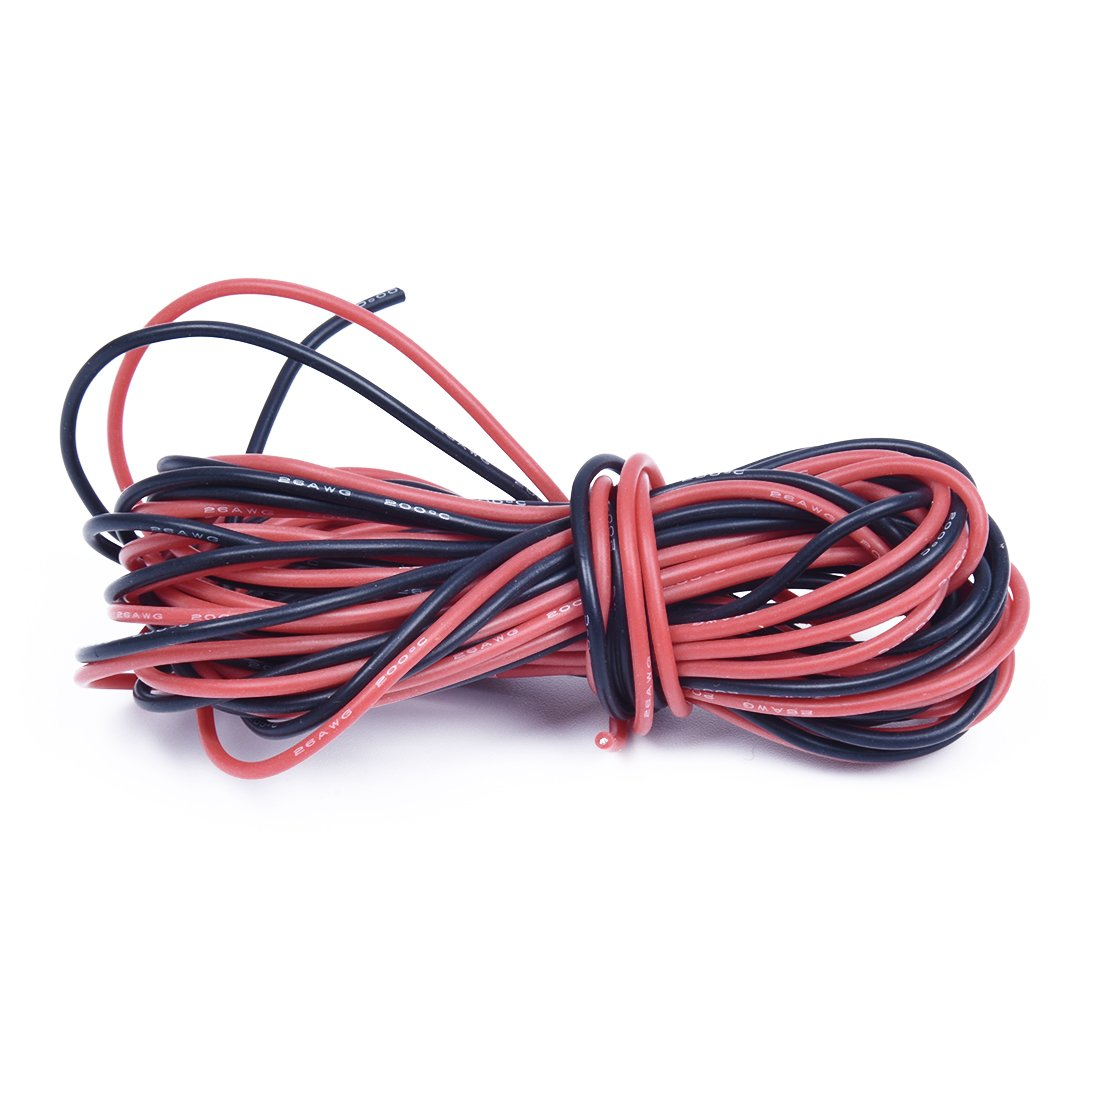 SODIAL(R) 2x 3M 26 Gauge AWG Silicone Rubber Wire Cable Red Black Flexible